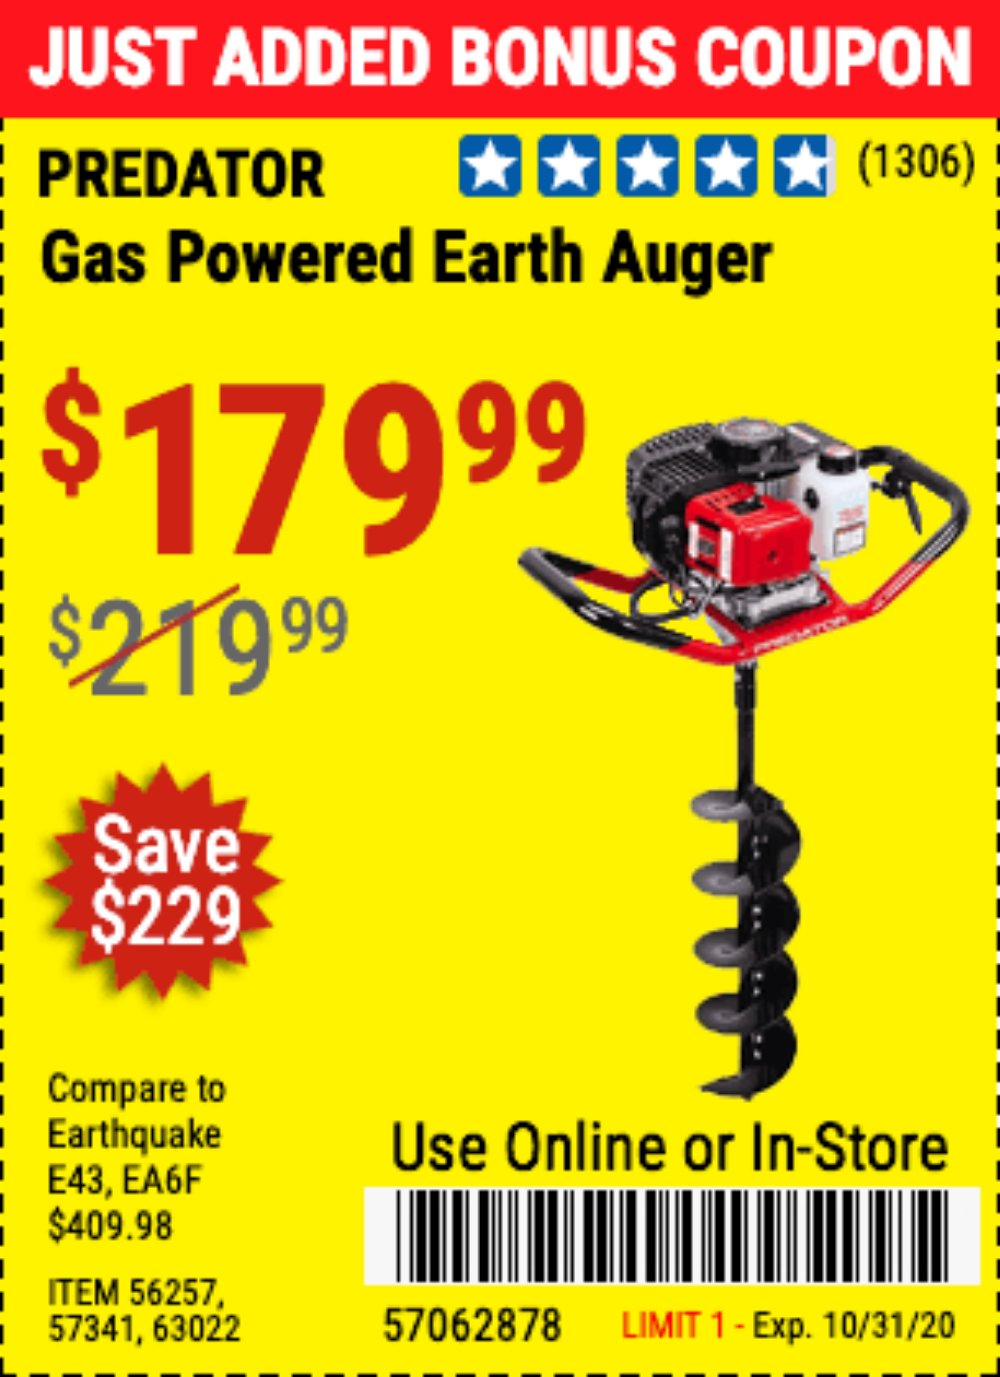 Harbor Freight Coupon, HF Coupons - 2 Hp Gas Powered Earth Auger With 6